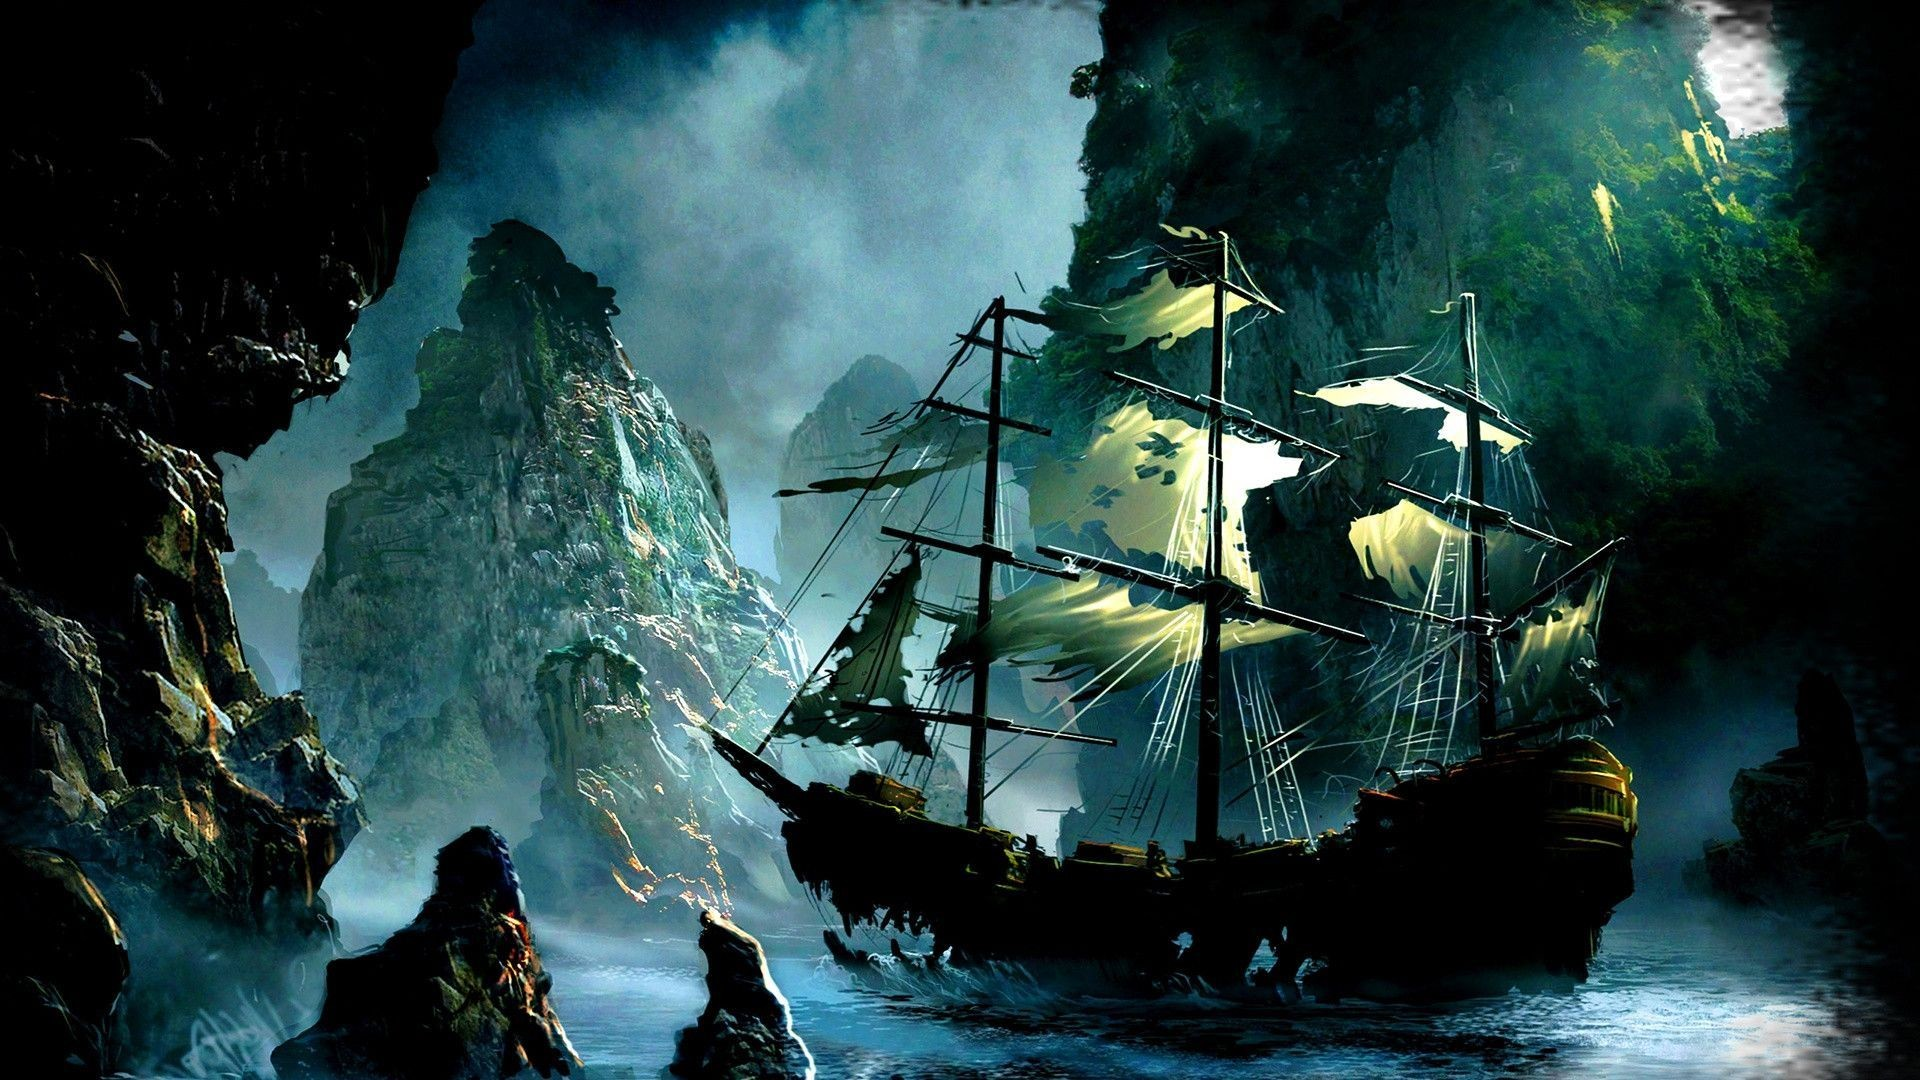 Pirate Ship Wallpapers (53 Wallpapers)